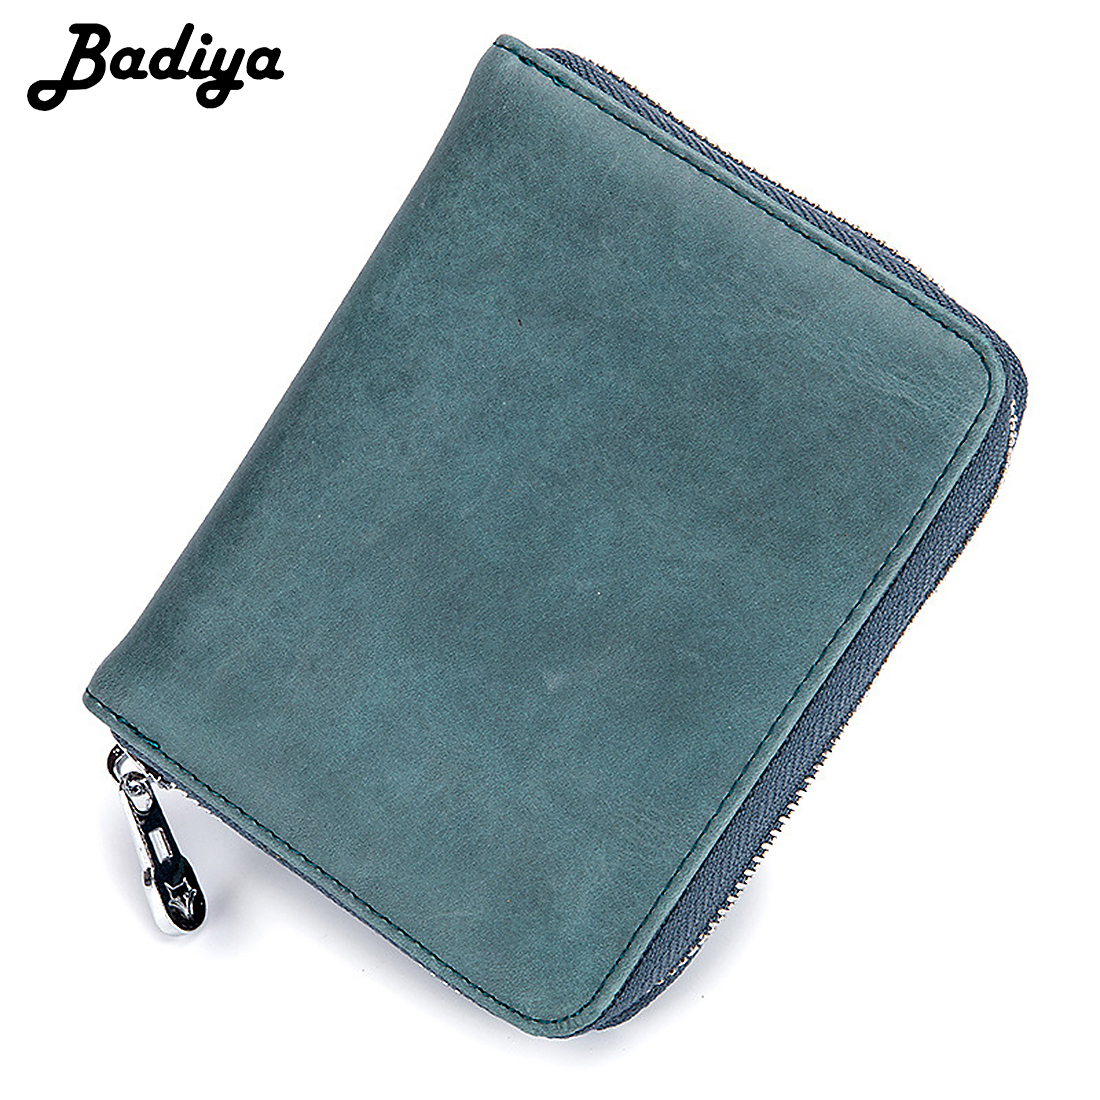 Accordion Genuine Leather Credit Cards Holer for Men Women Multifunctional Travel Passport Zipper Wallet Coin Purse